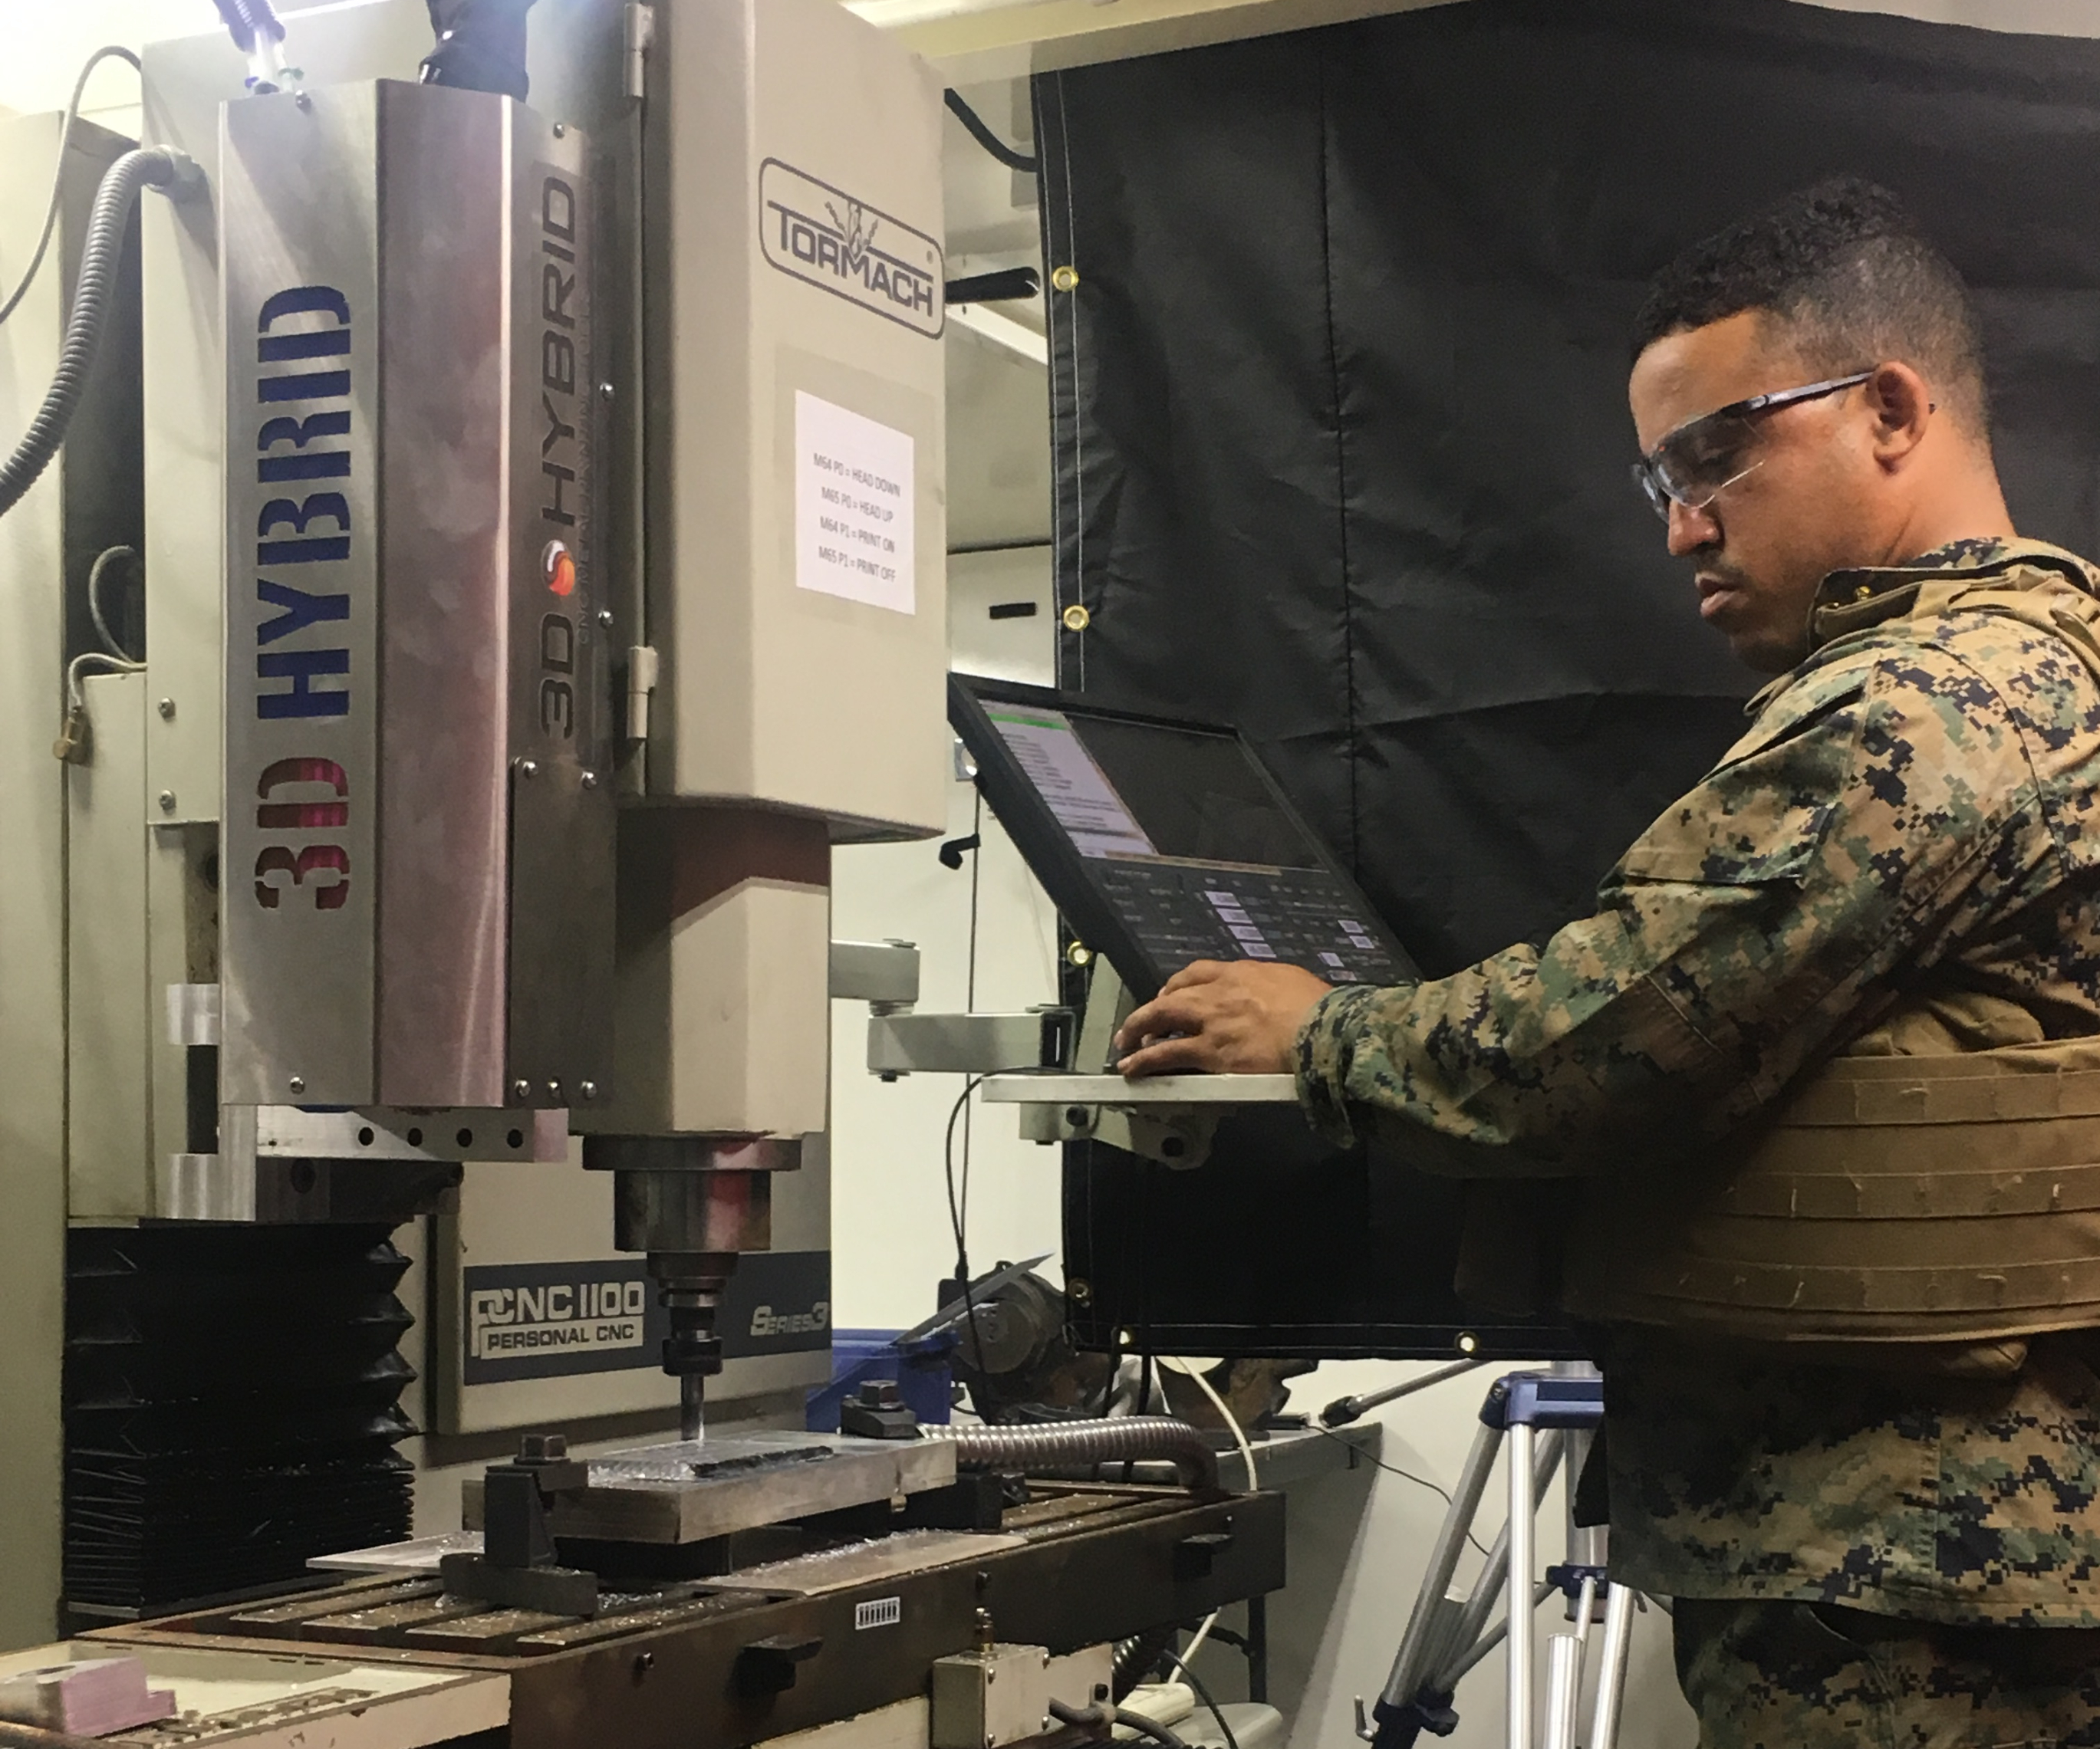 Marine using hybrid additive manufacturing